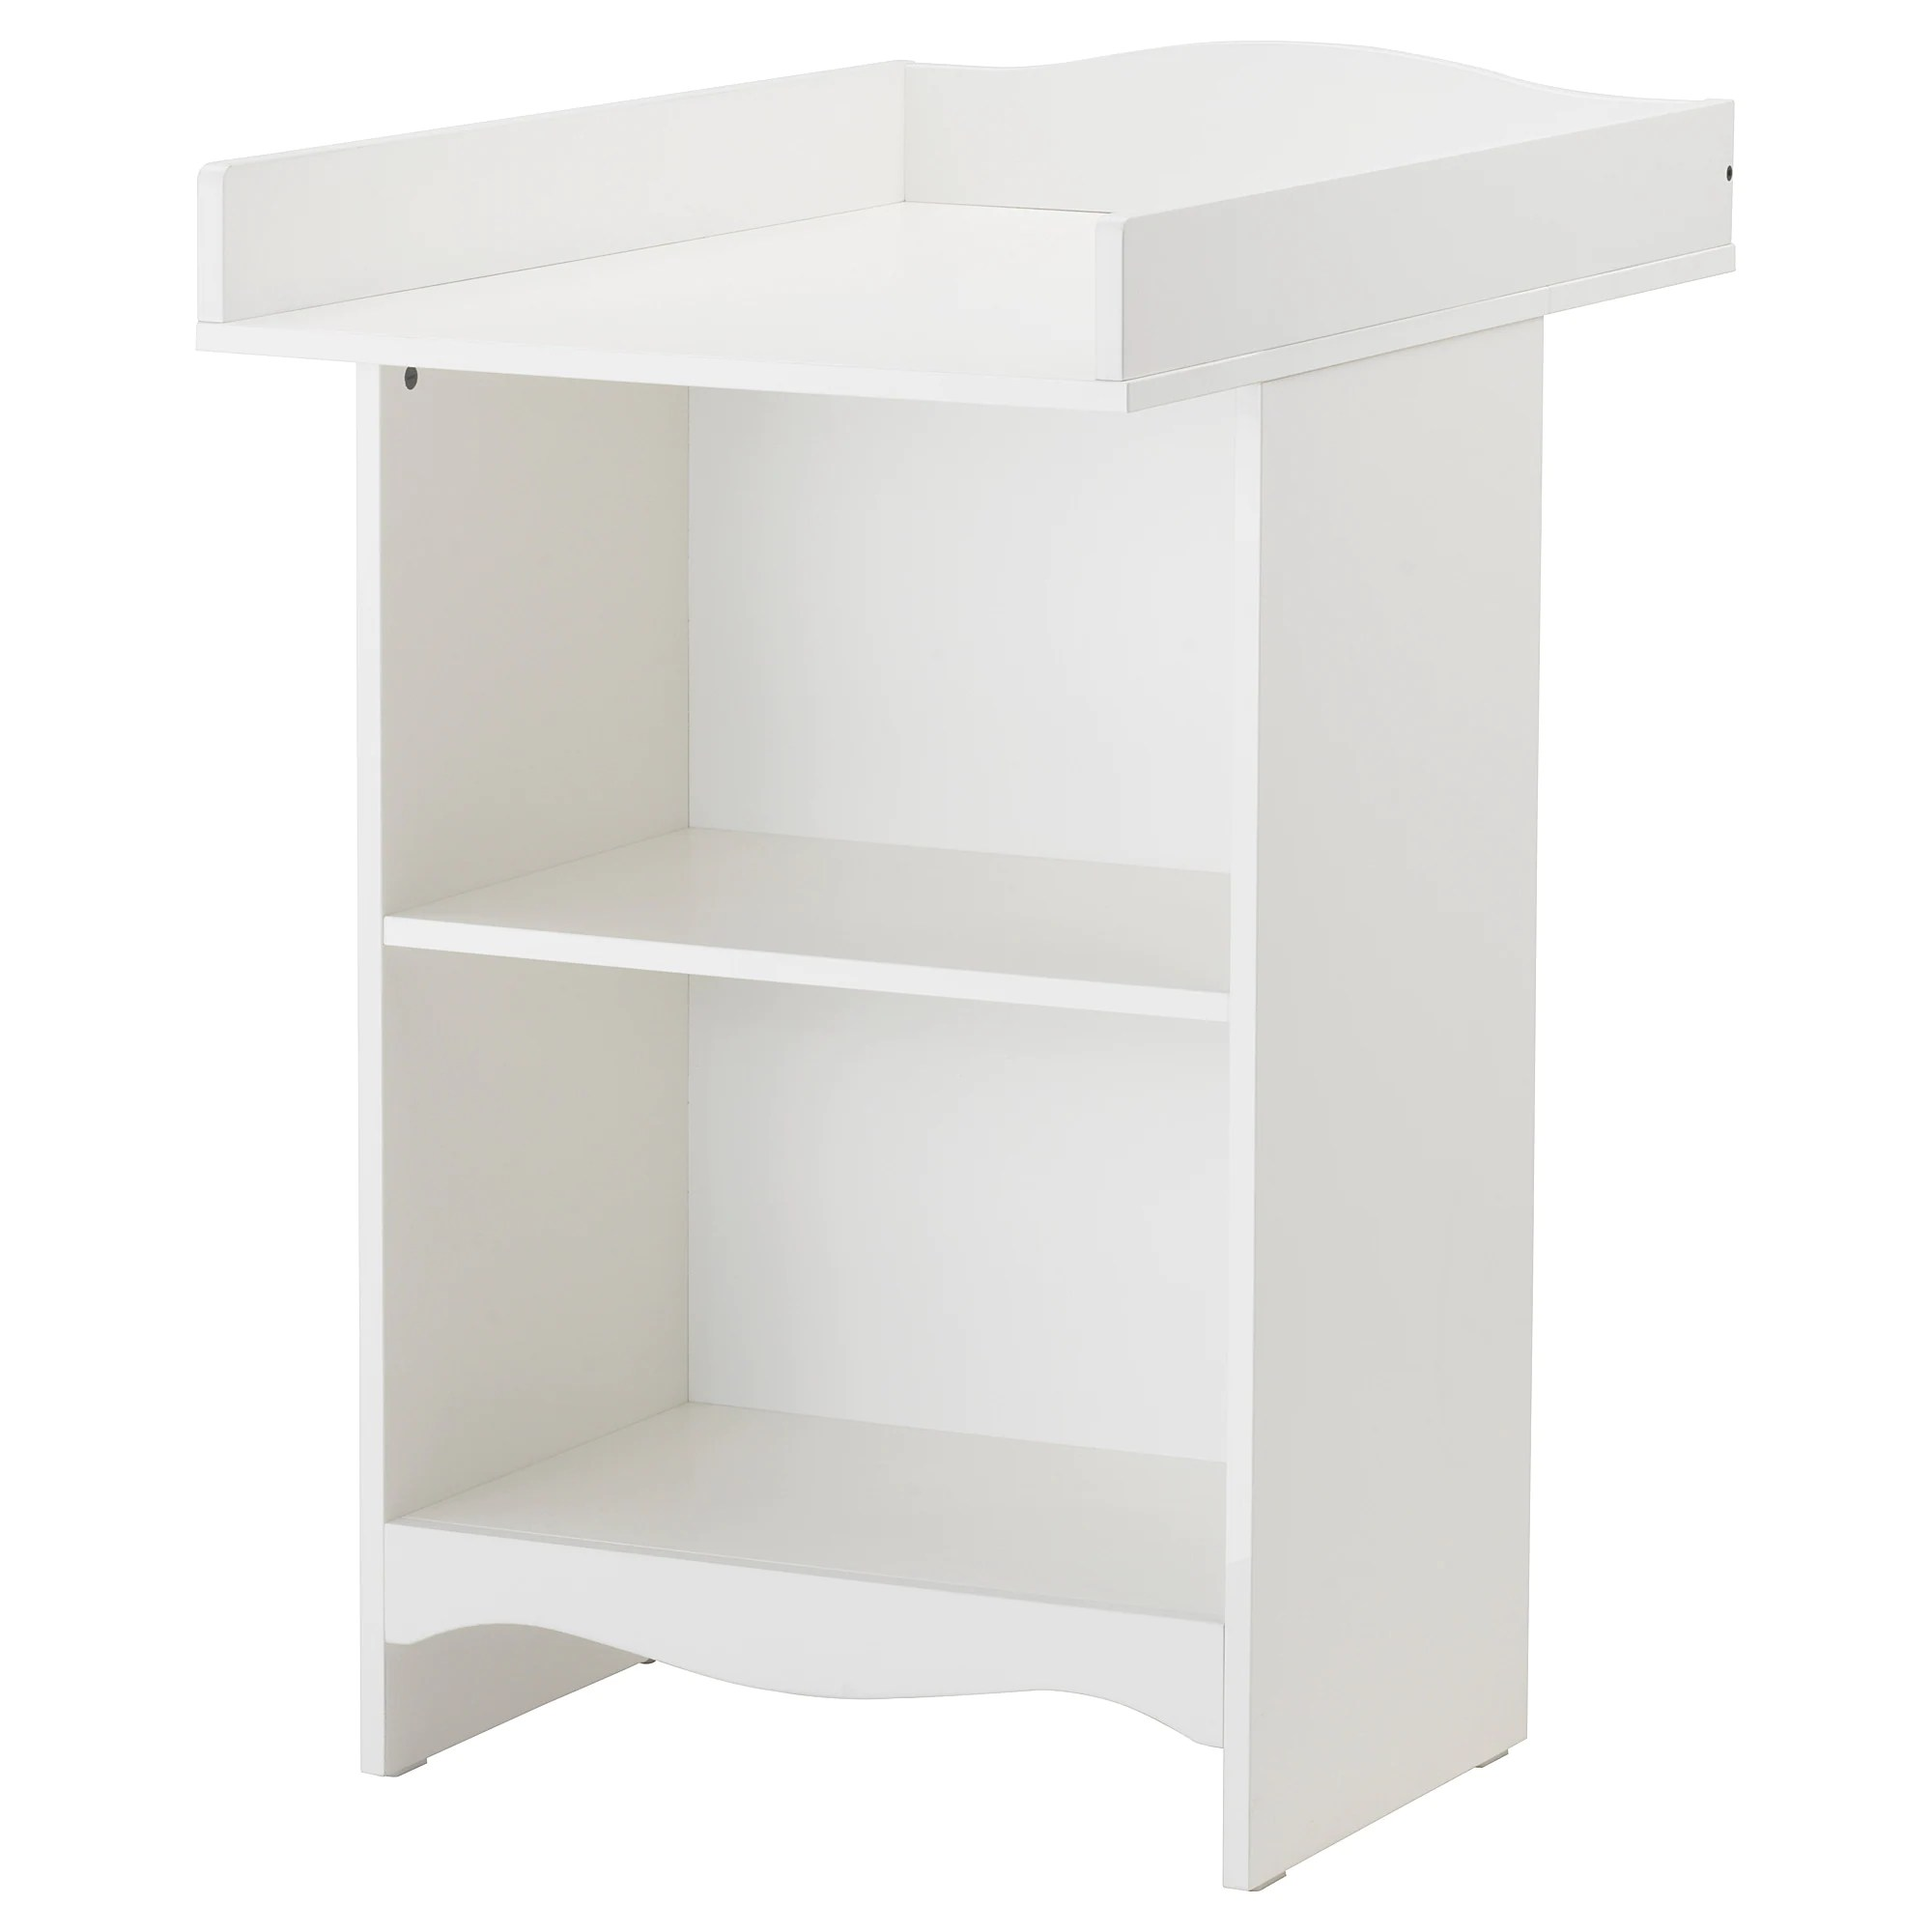 Ikea Meuble à Langer Table à Langer Solgul Blanc